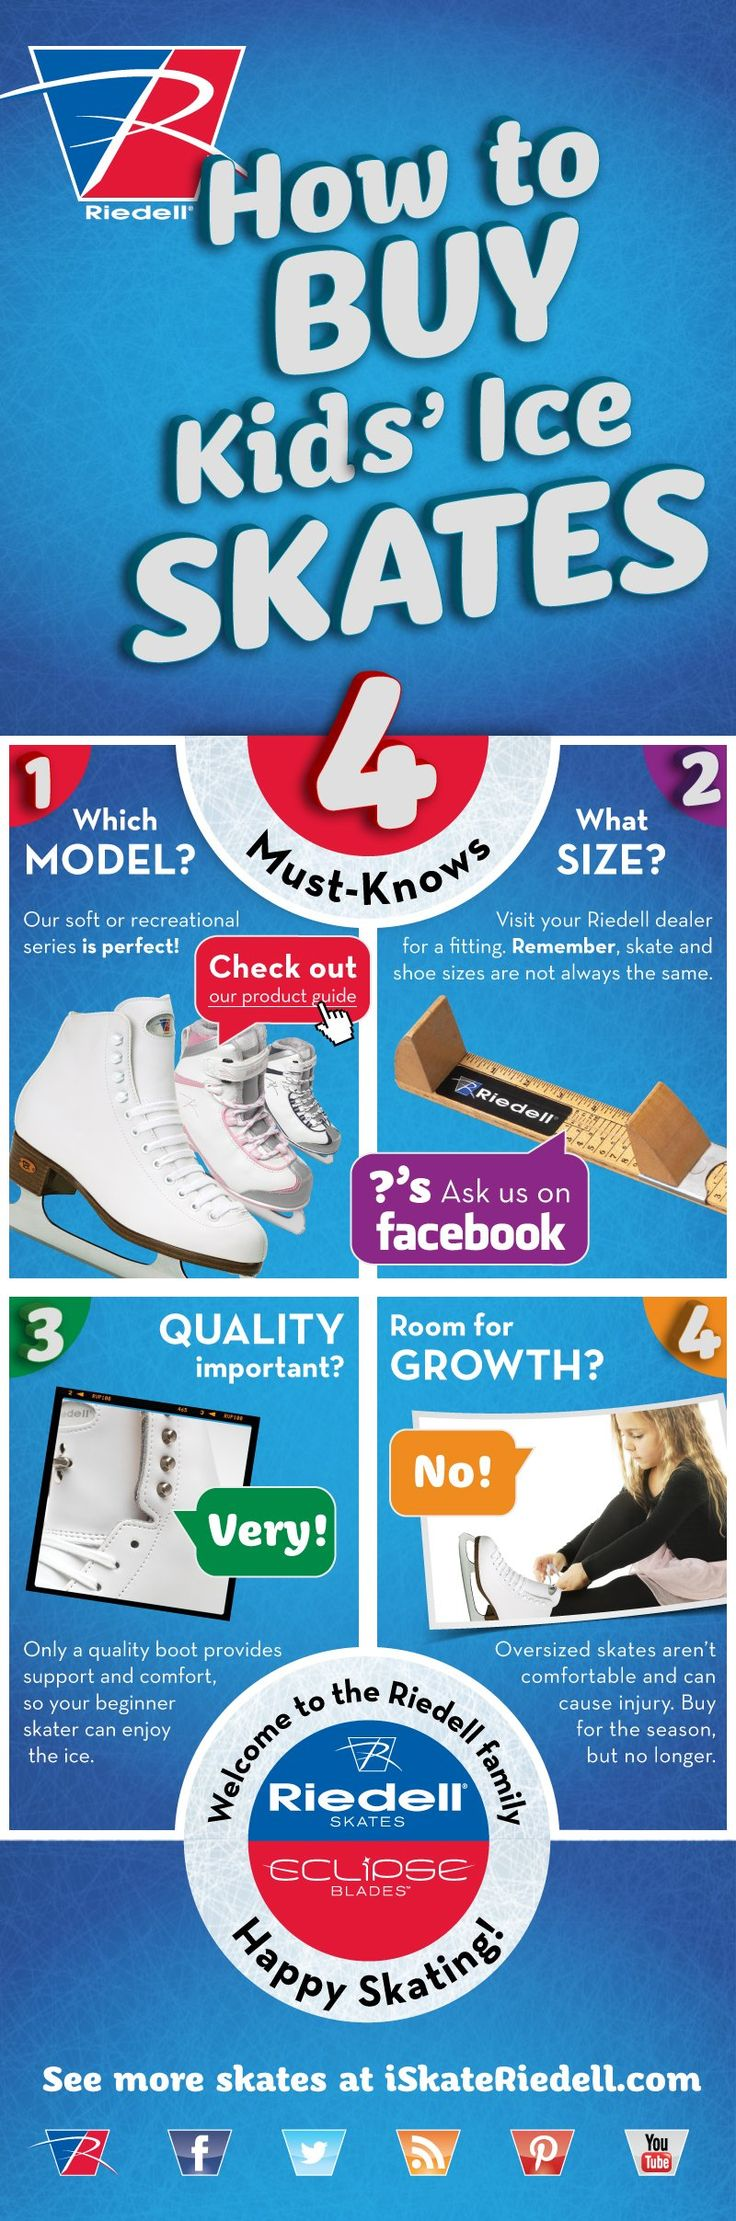 How to Buy Kids' Ice Skates by Riedell. Perfect for beginners!